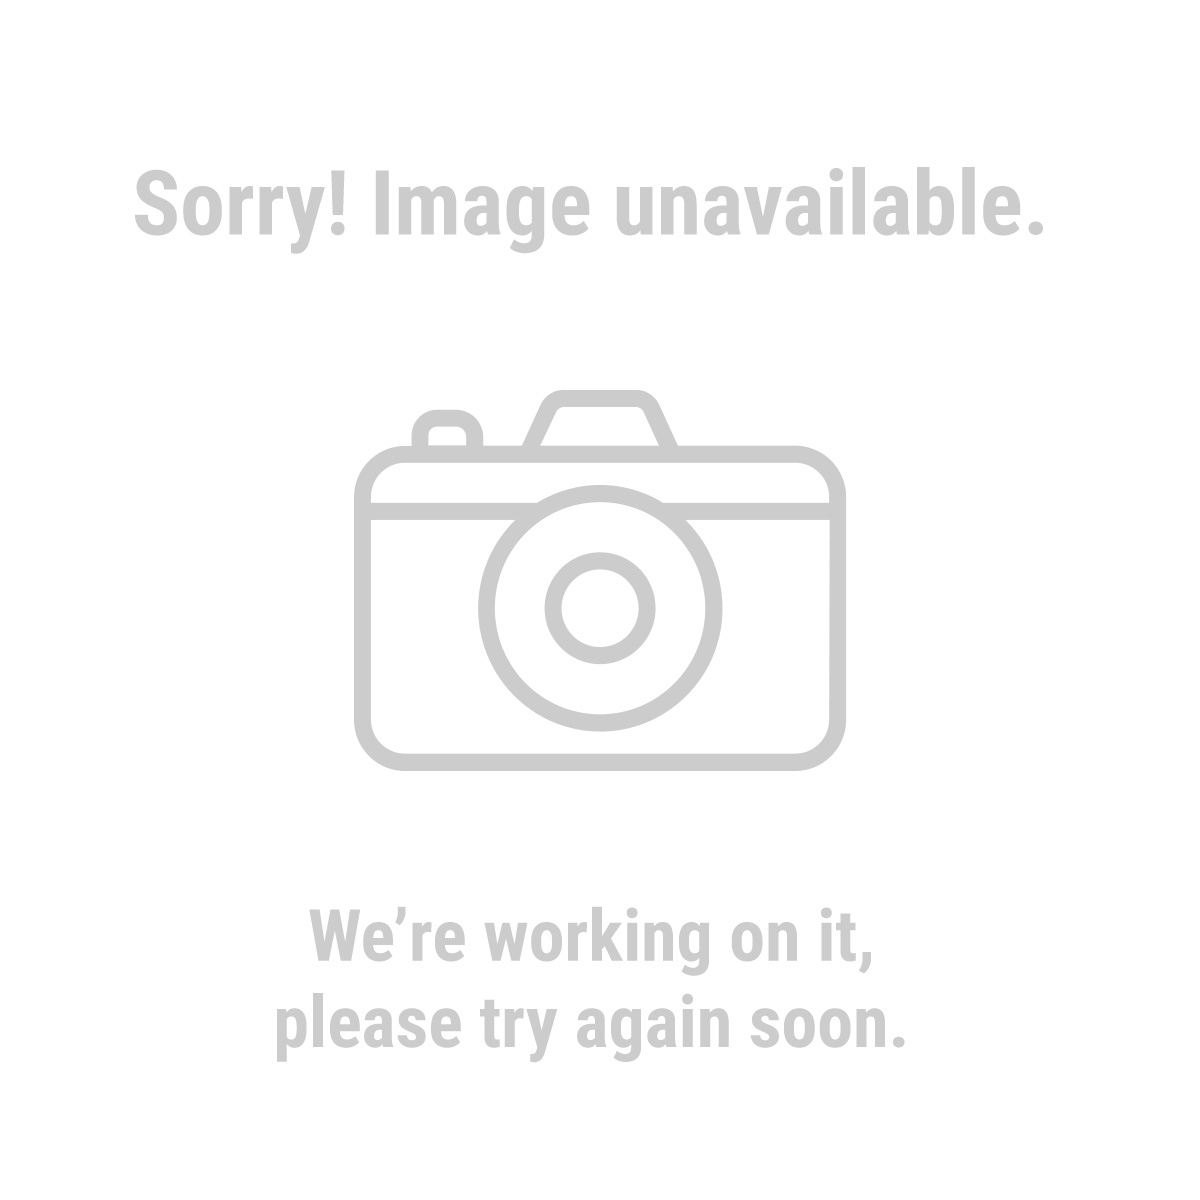 "CROSS & BECKER 4184 Pack of 12 4"" Industrial Grade Chip Brushes"